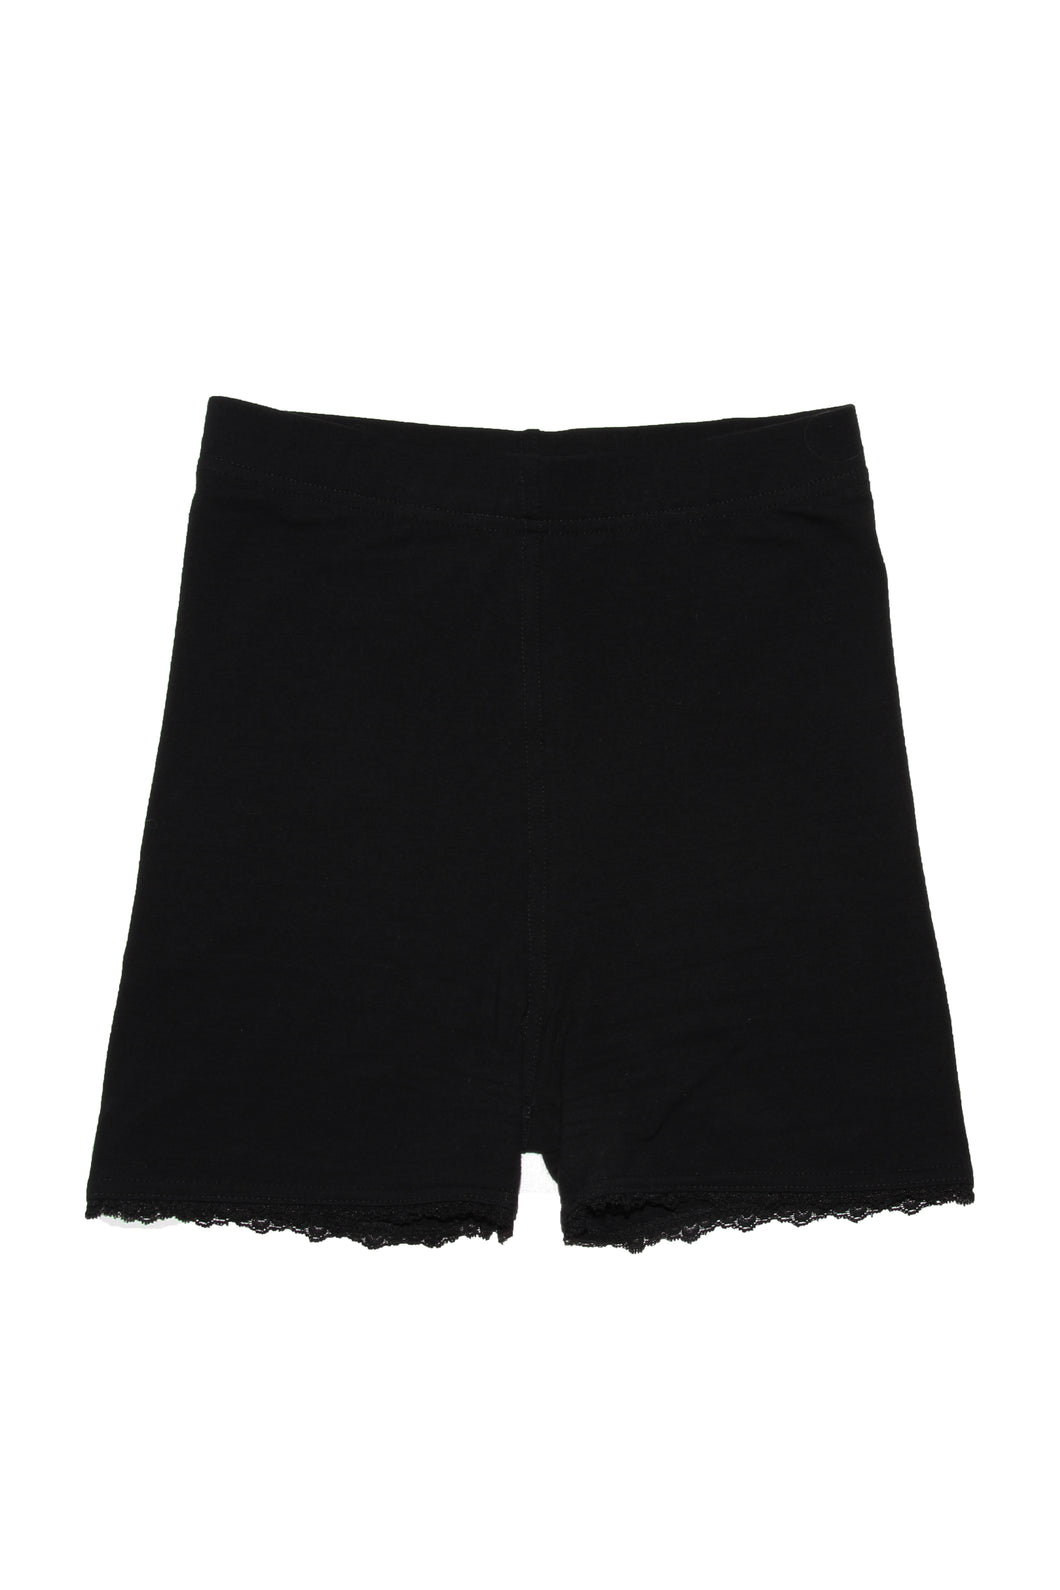 Lace Trim Bike Short